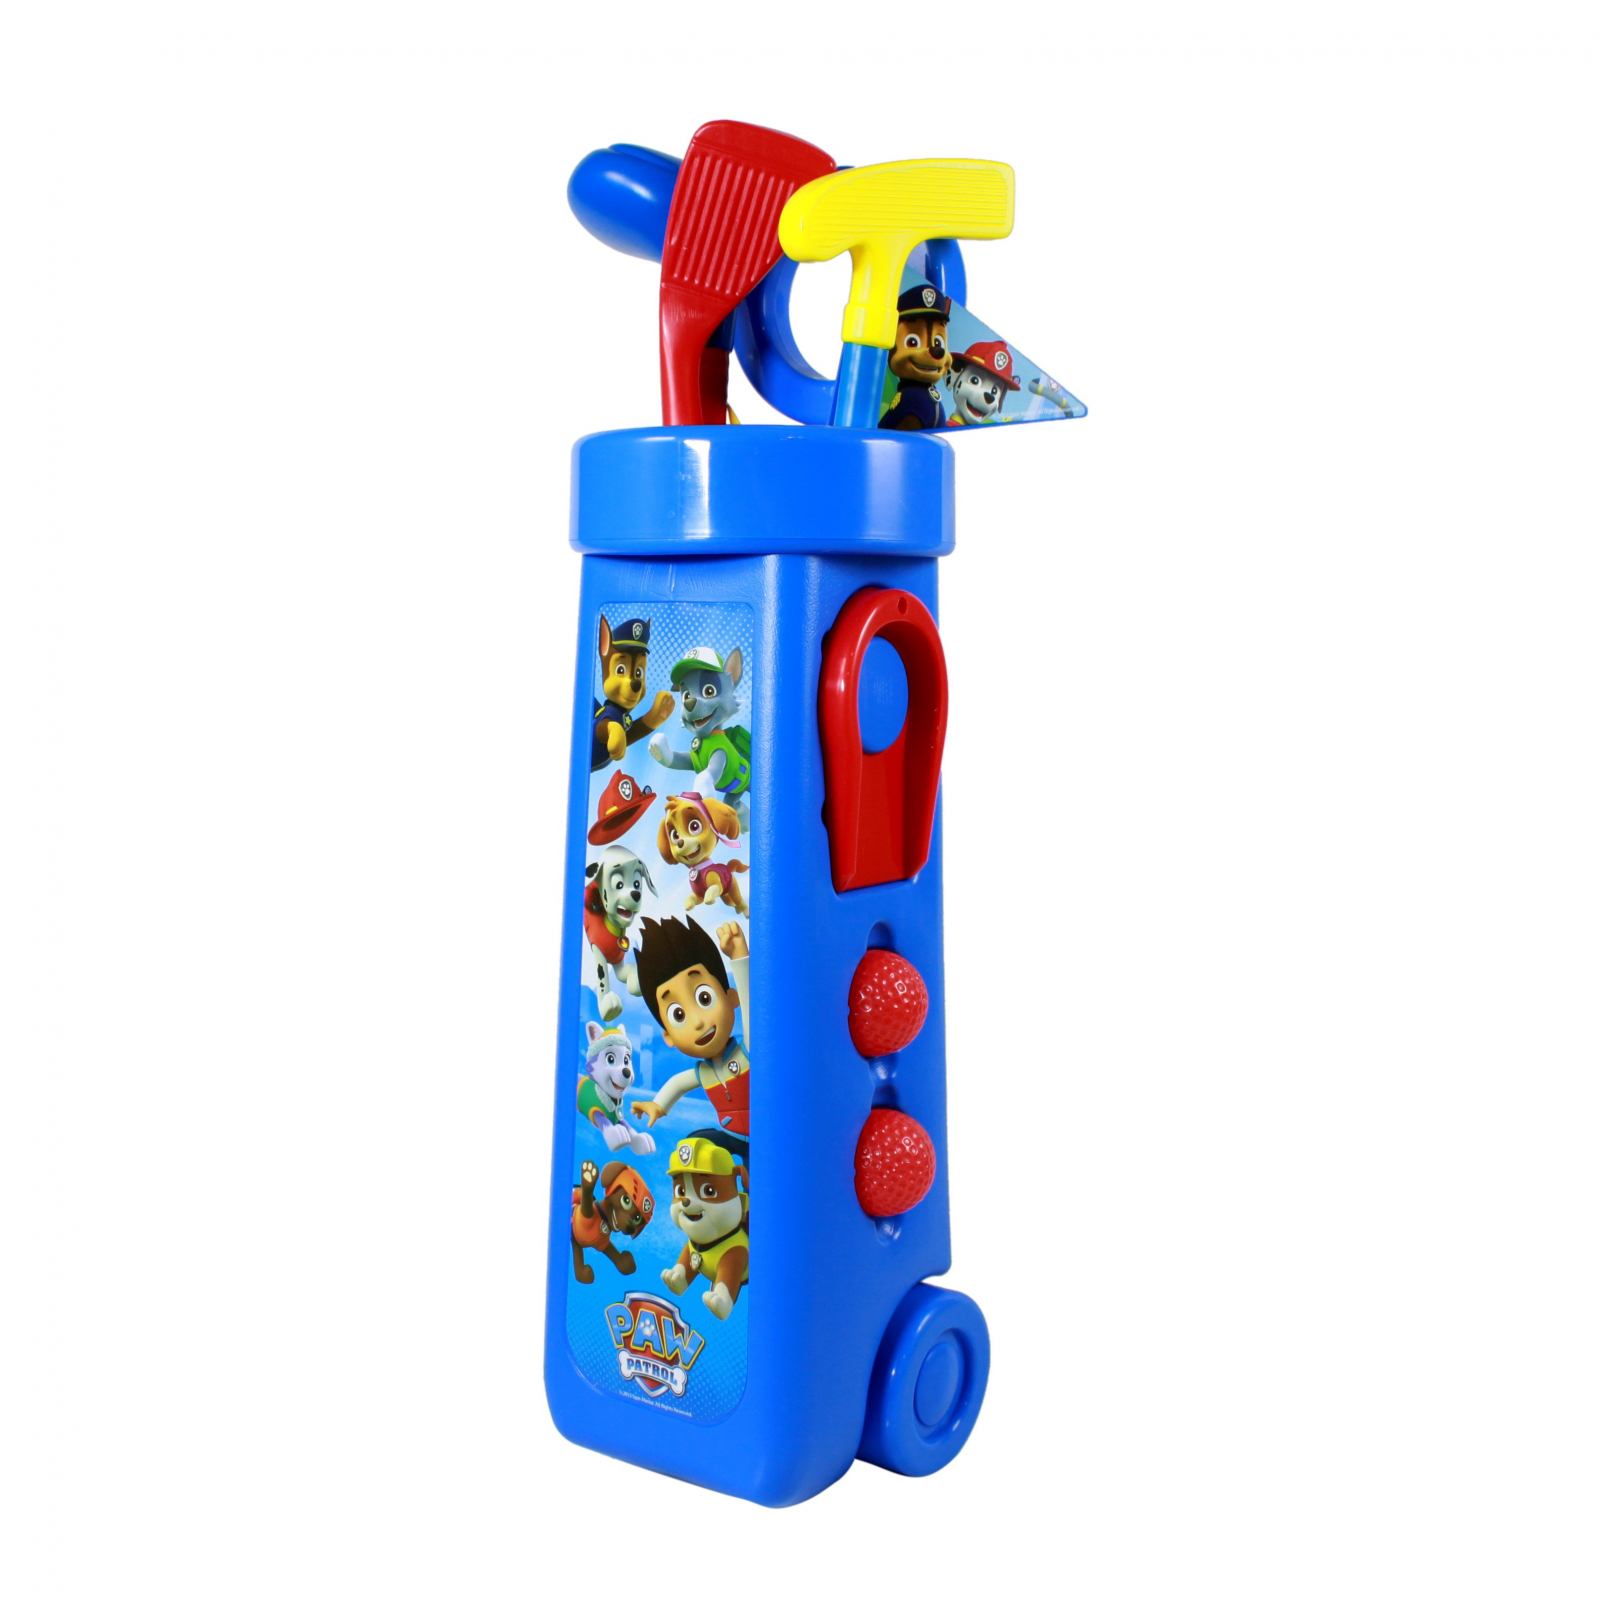 Nickelodeon Paw Patrol Kids Golf Caddy Play Set 10 Pieces